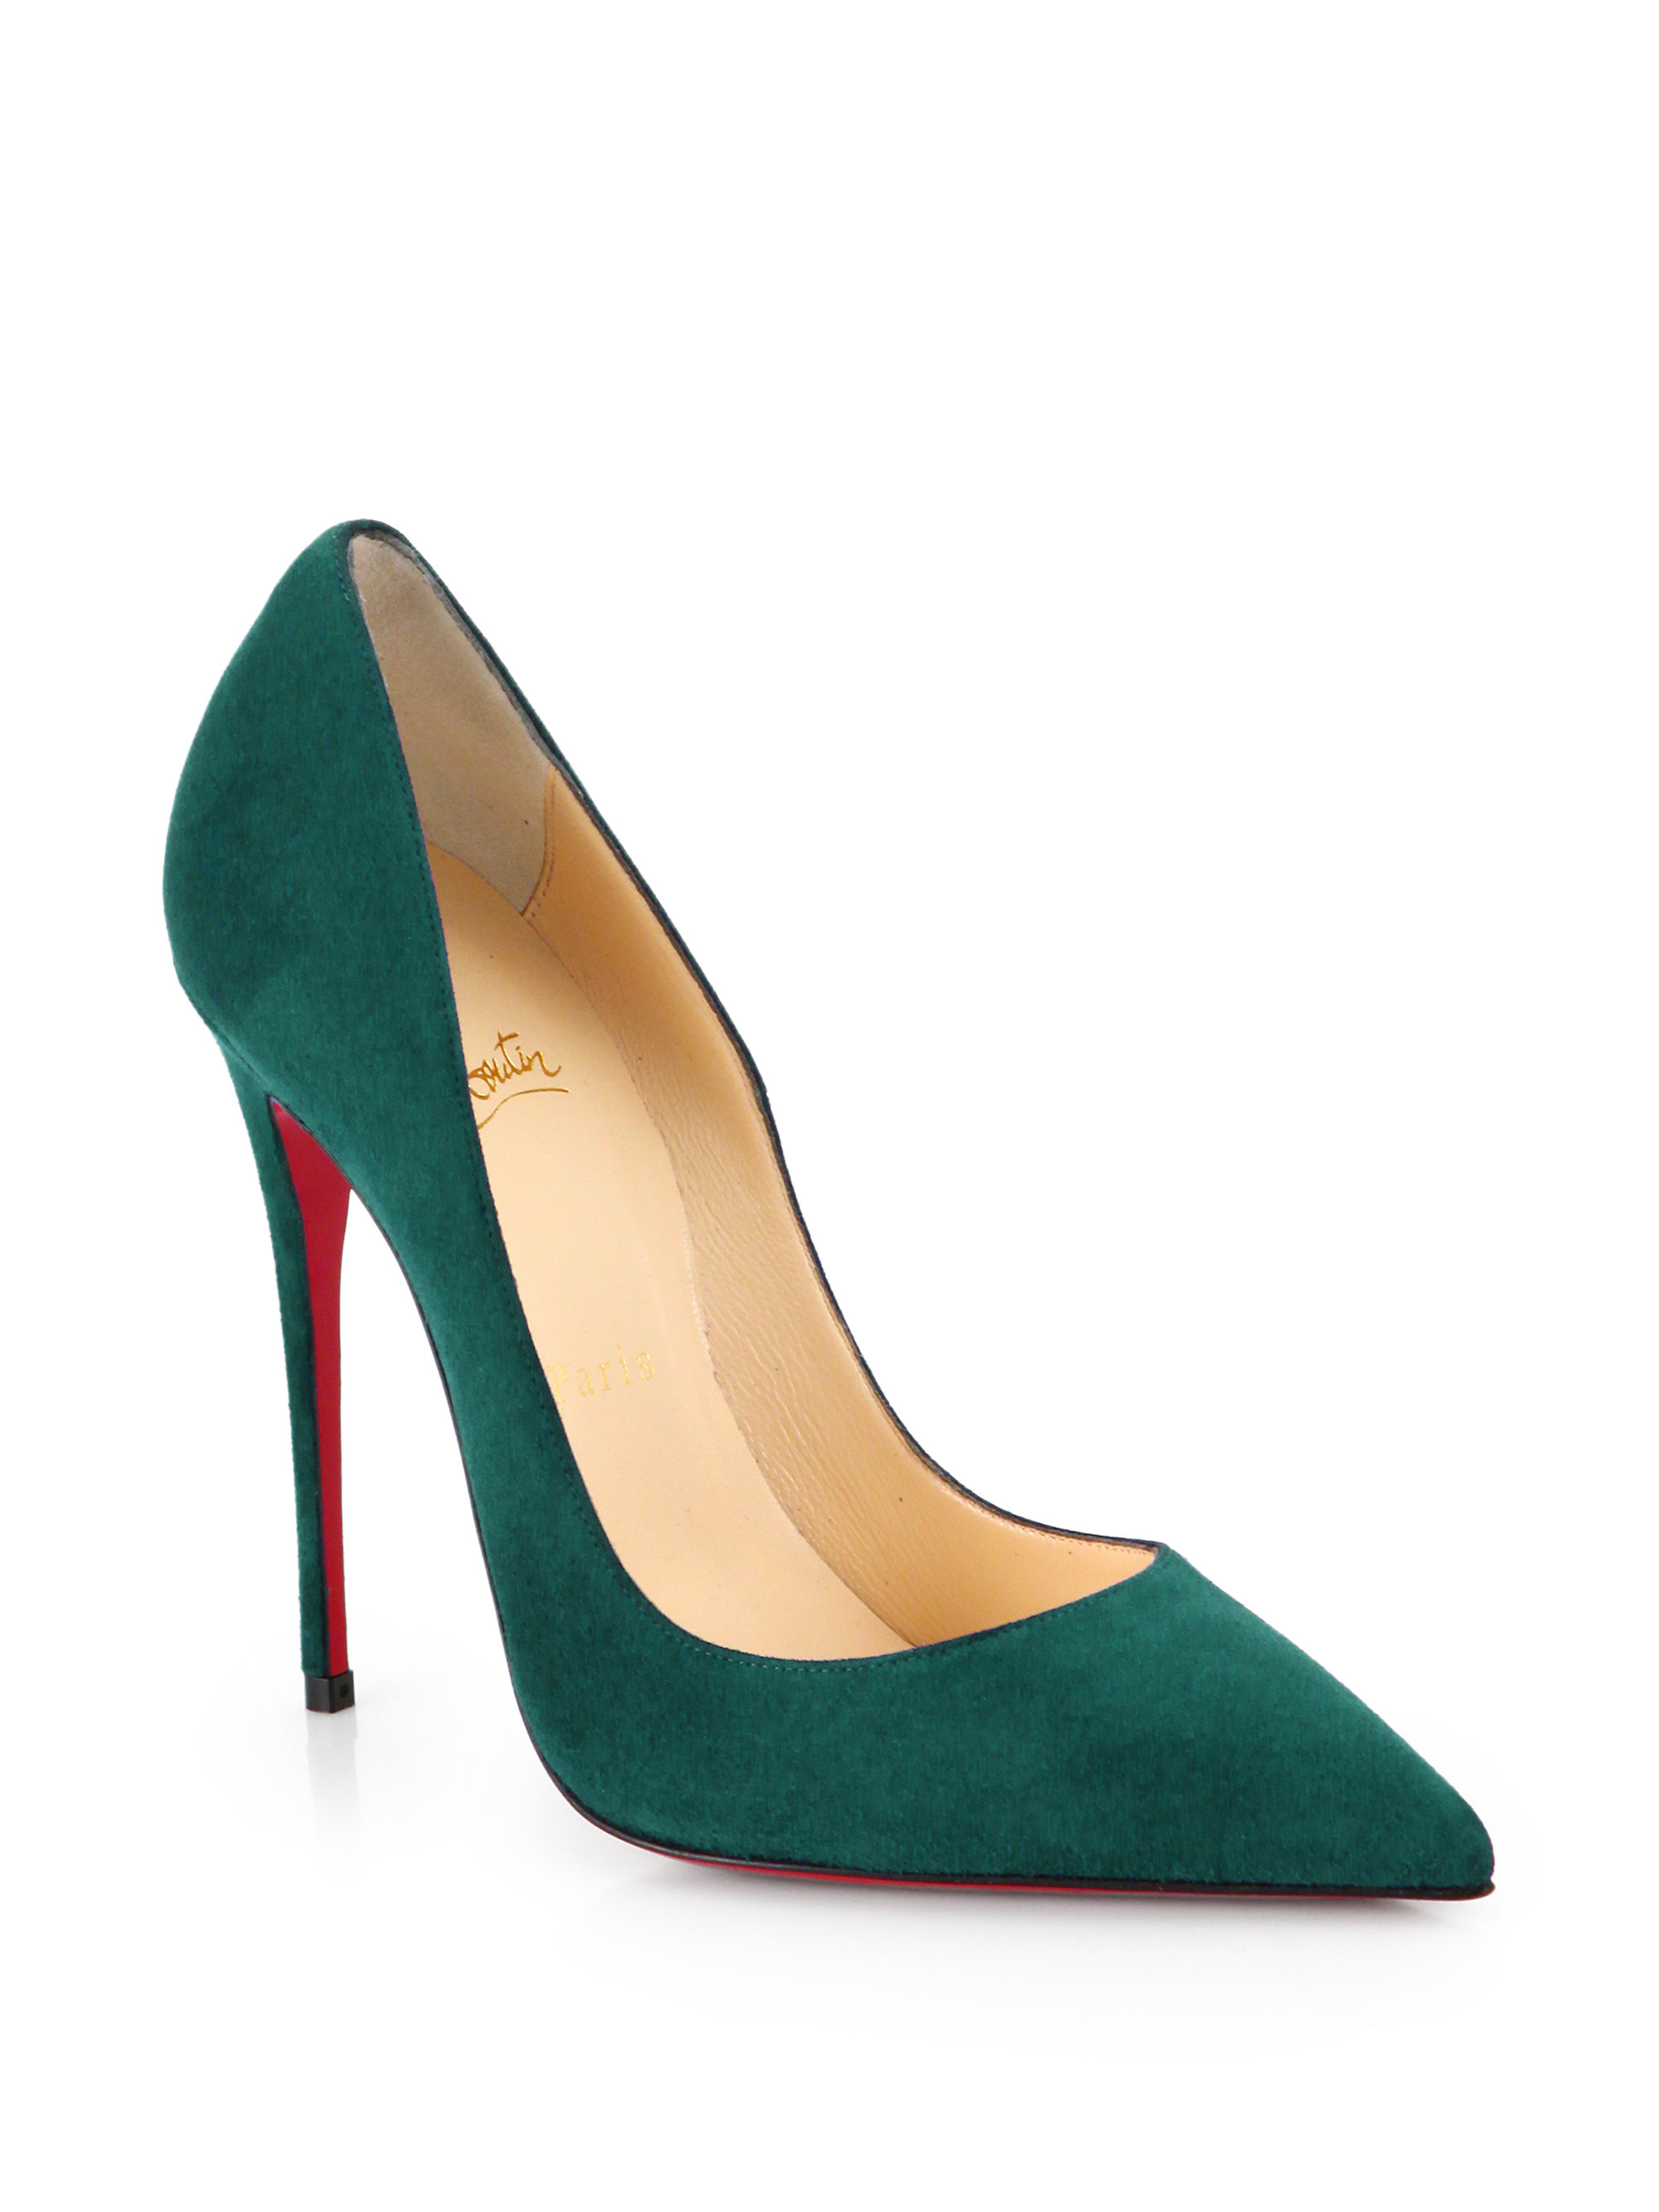 d7e238806cf6 Lyst - Christian Louboutin So Kate Suede Pumps in Green